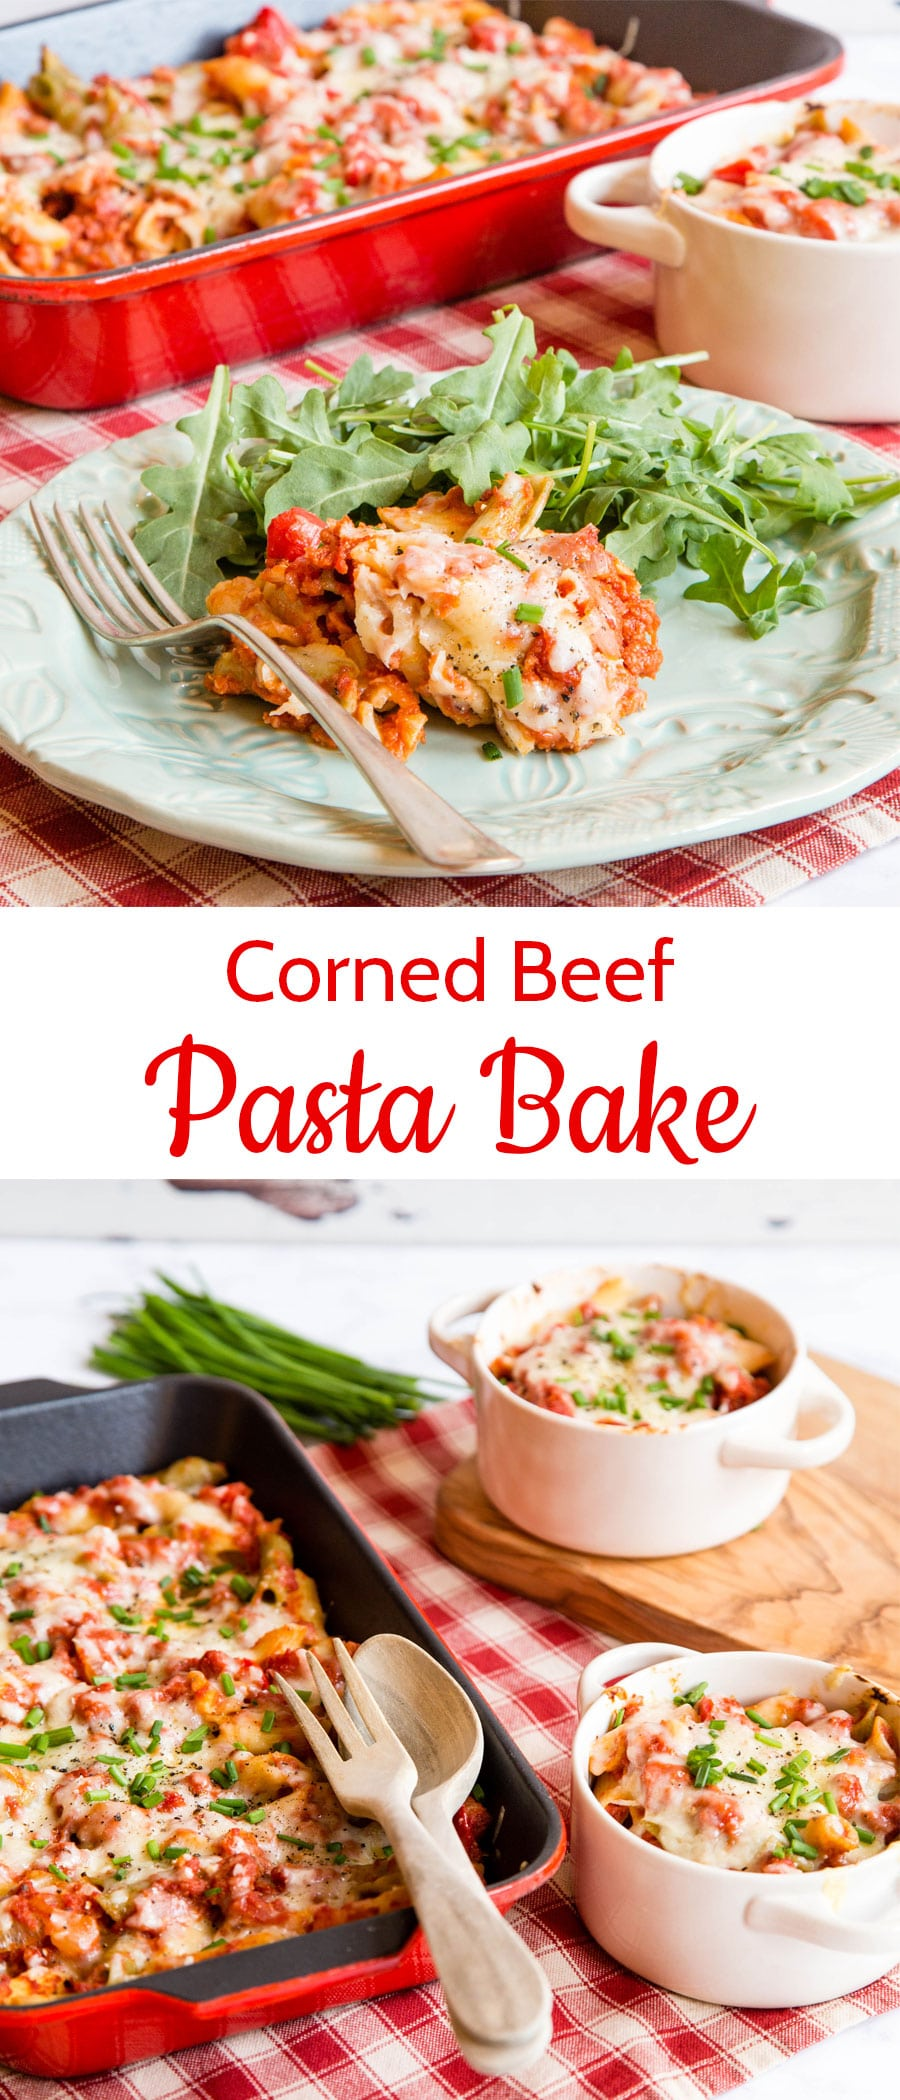 Corned beef pasta bake - this easy recipe for a pasta bake with corned beef can be made ahead of time, kept in the fridge or freezer and then baked for a family friendly winter warming dish. Make a double batch of the corned beef ragu for a baked potato filling.  Cook once and eat twice.